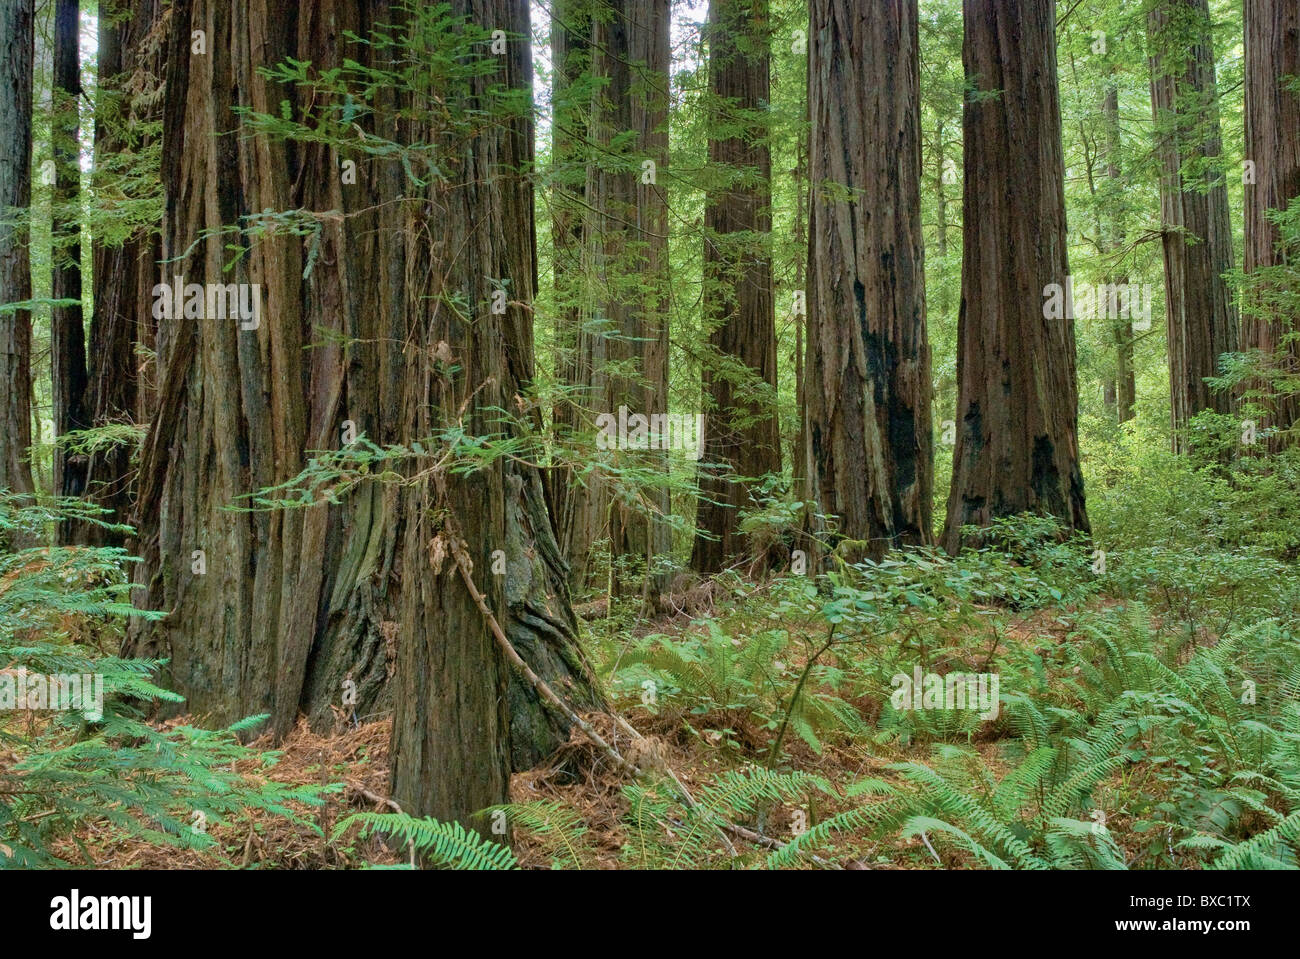 Redwood trees at Rockefeller Forest at Humboldt Redwoods State Park near Albee Creek campground, California, USA - Stock Image